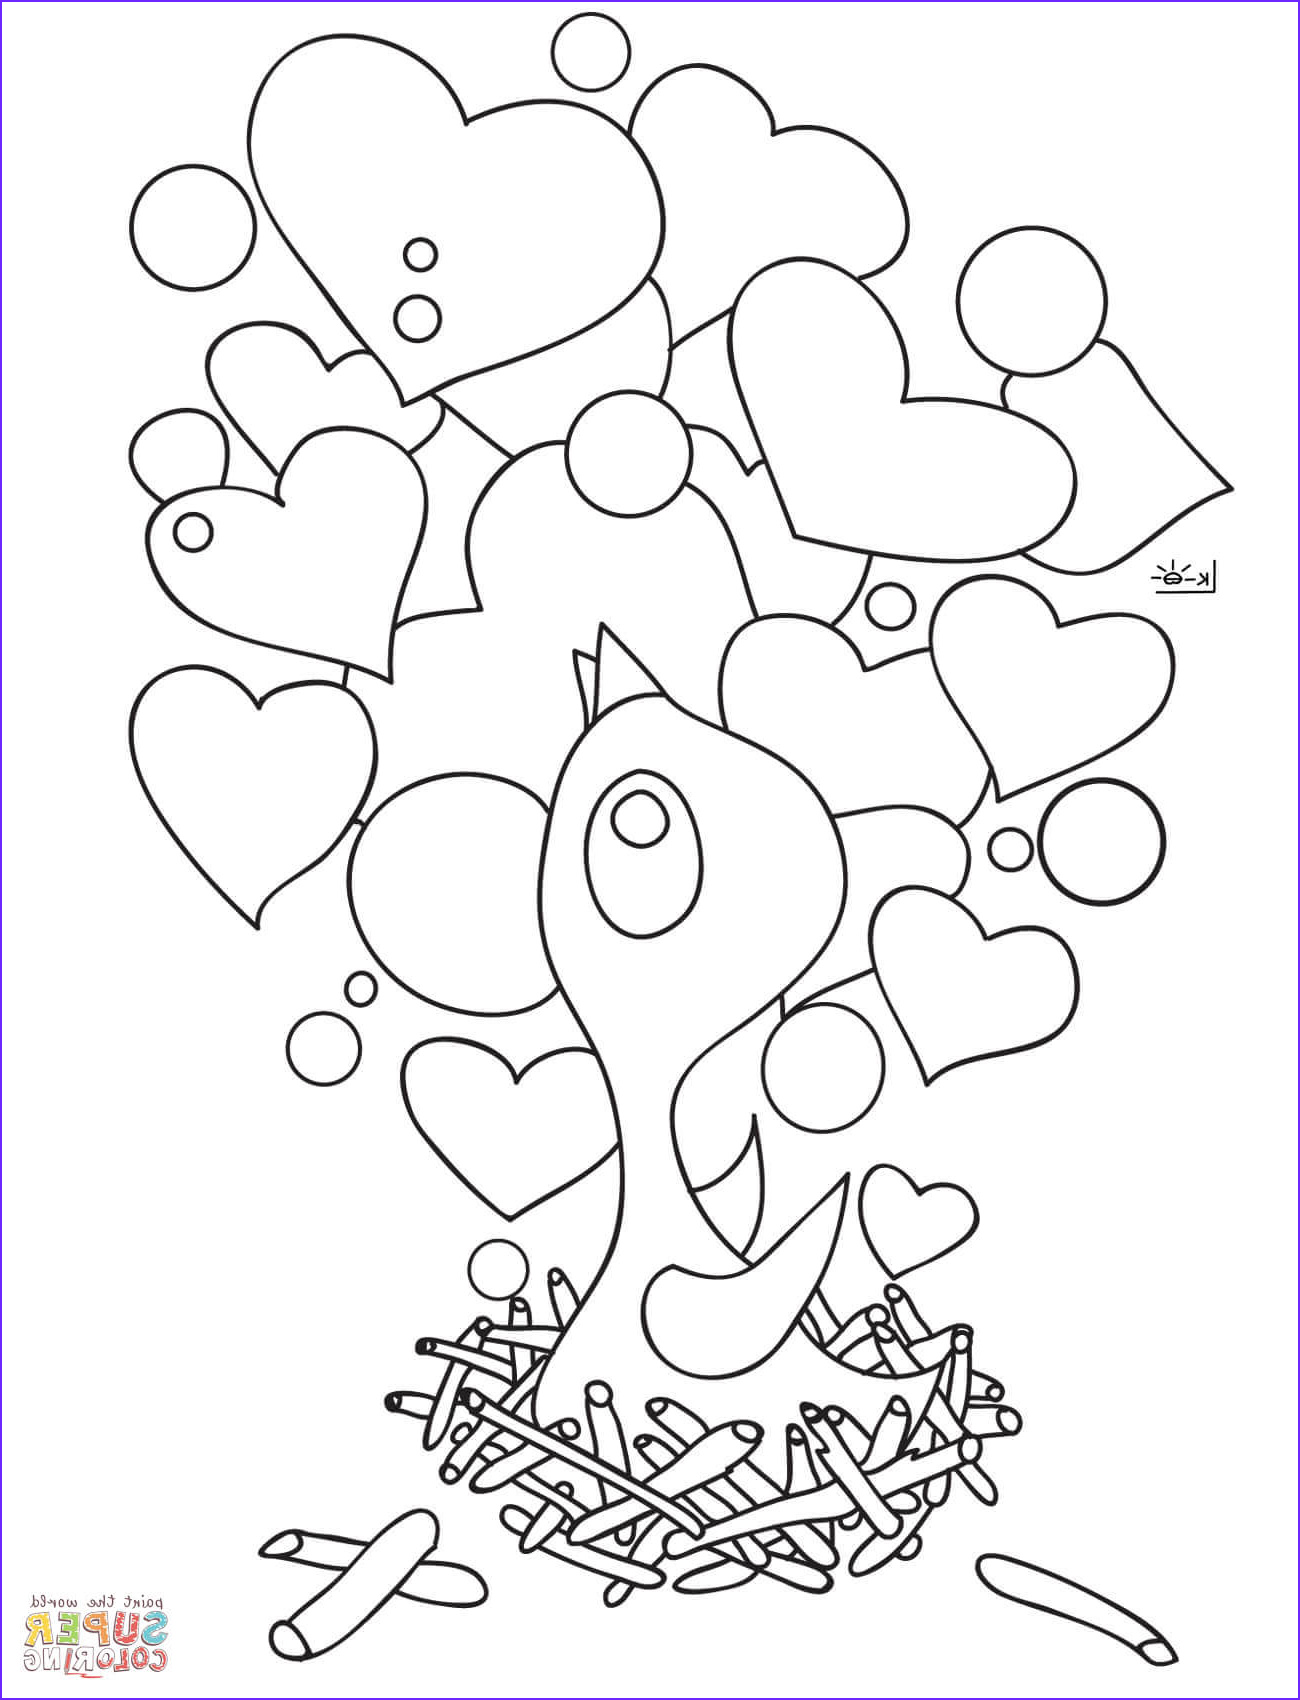 Nest Coloring Page Awesome Stock Chick In the Nest Coloring Page